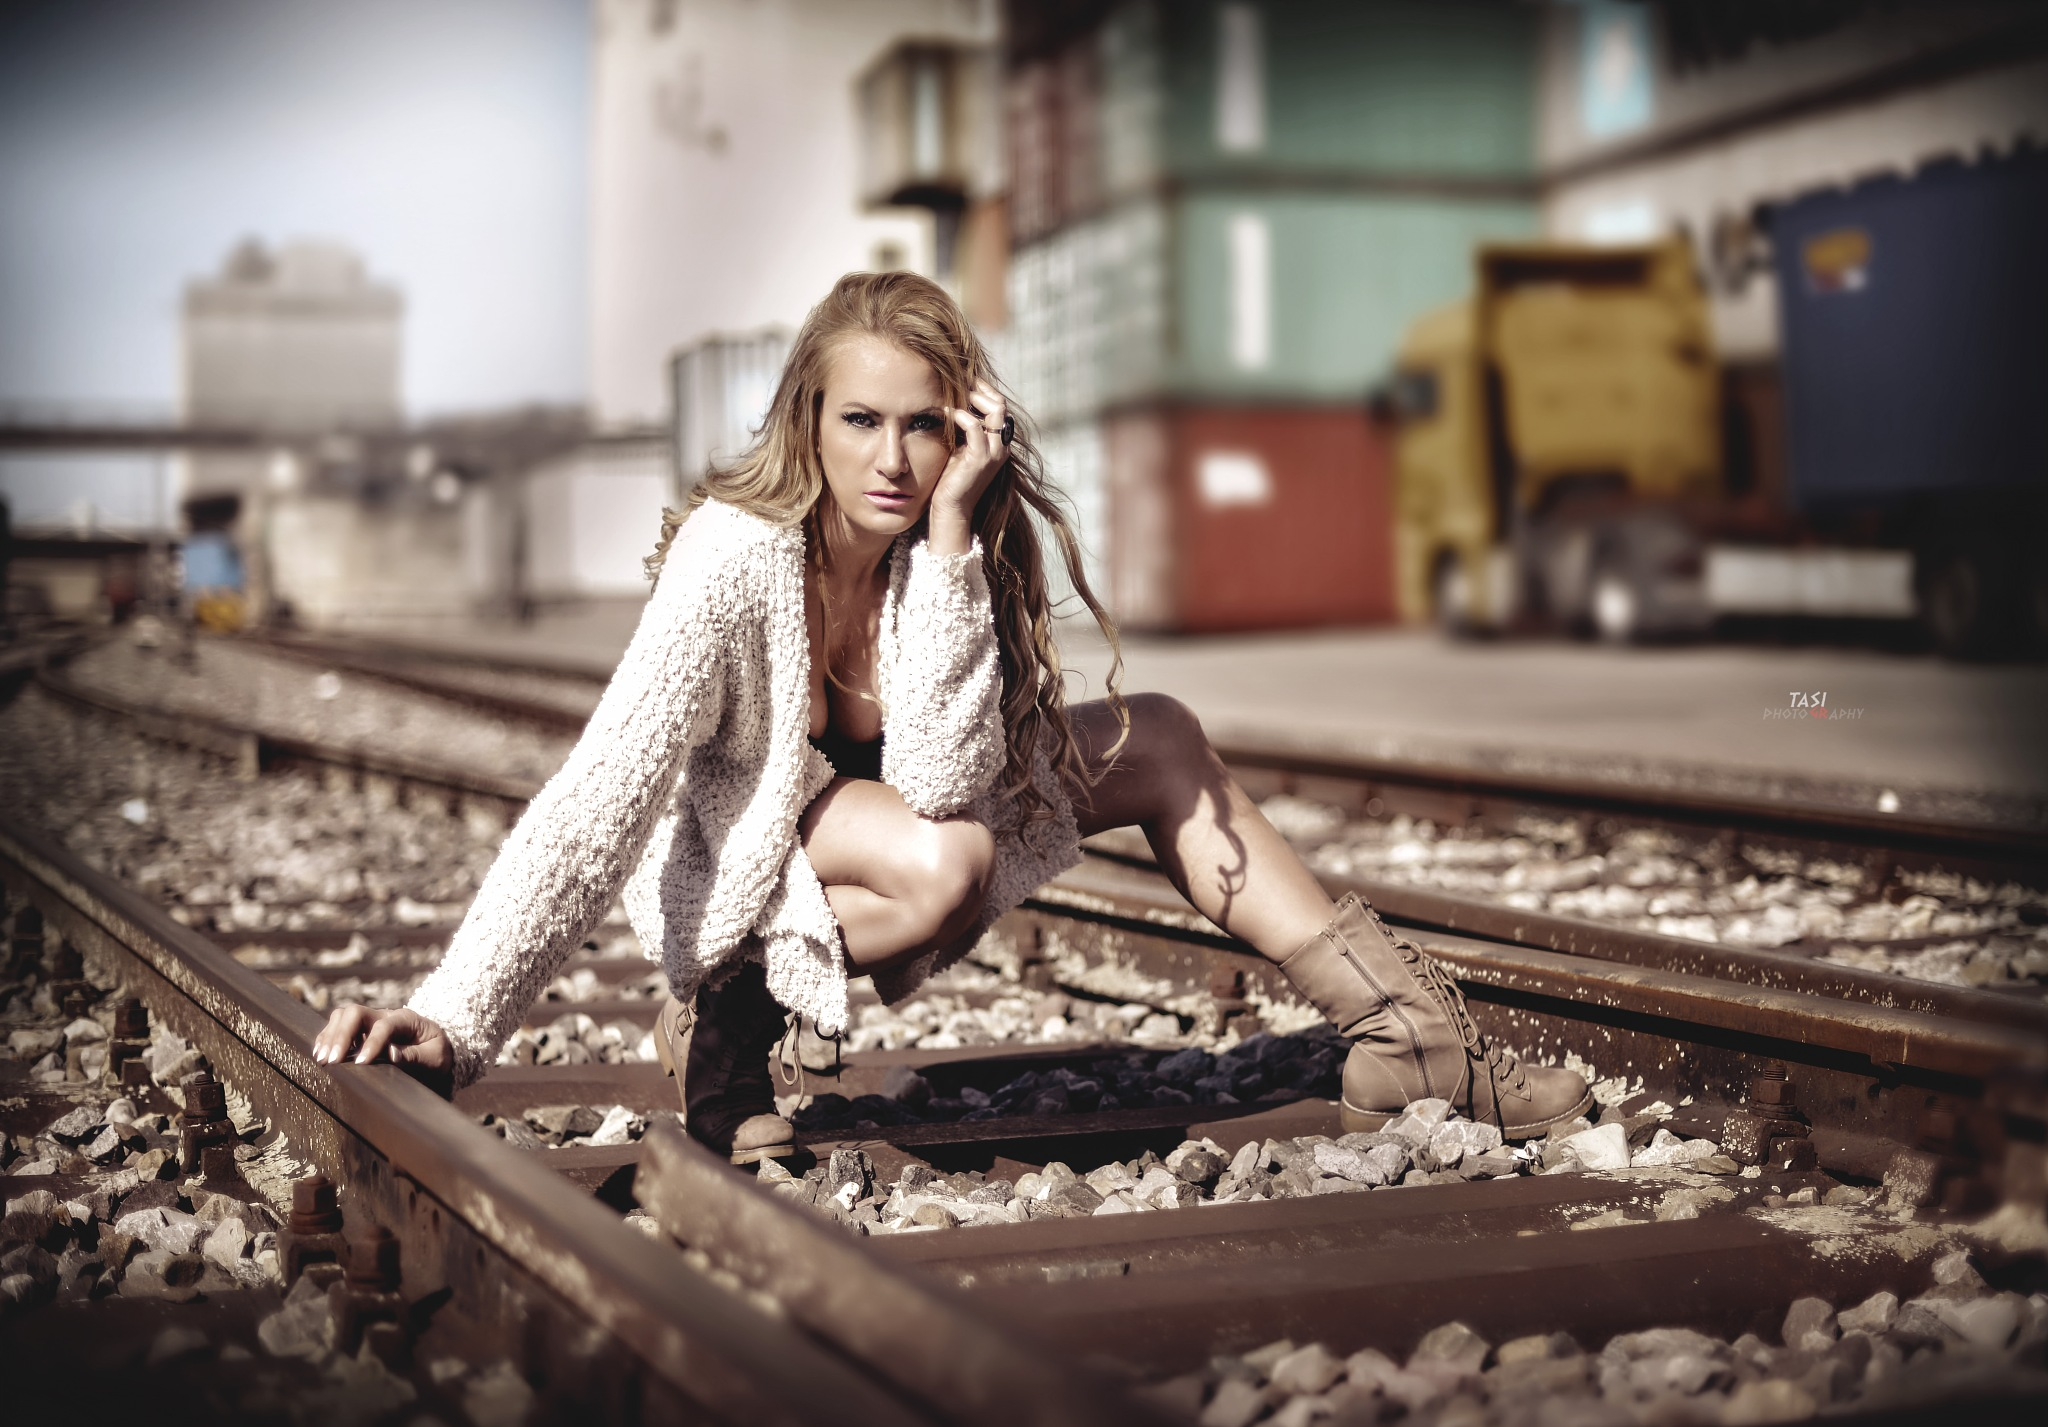 Photo in Portrait #rail #girl #young #body #legs #skin #face #train #station #street #industrial #pretty #hair #hot #sexy #outdoor #light #creative #railway #one #transportation #portrait #fashion #railroad #cardigan #boots